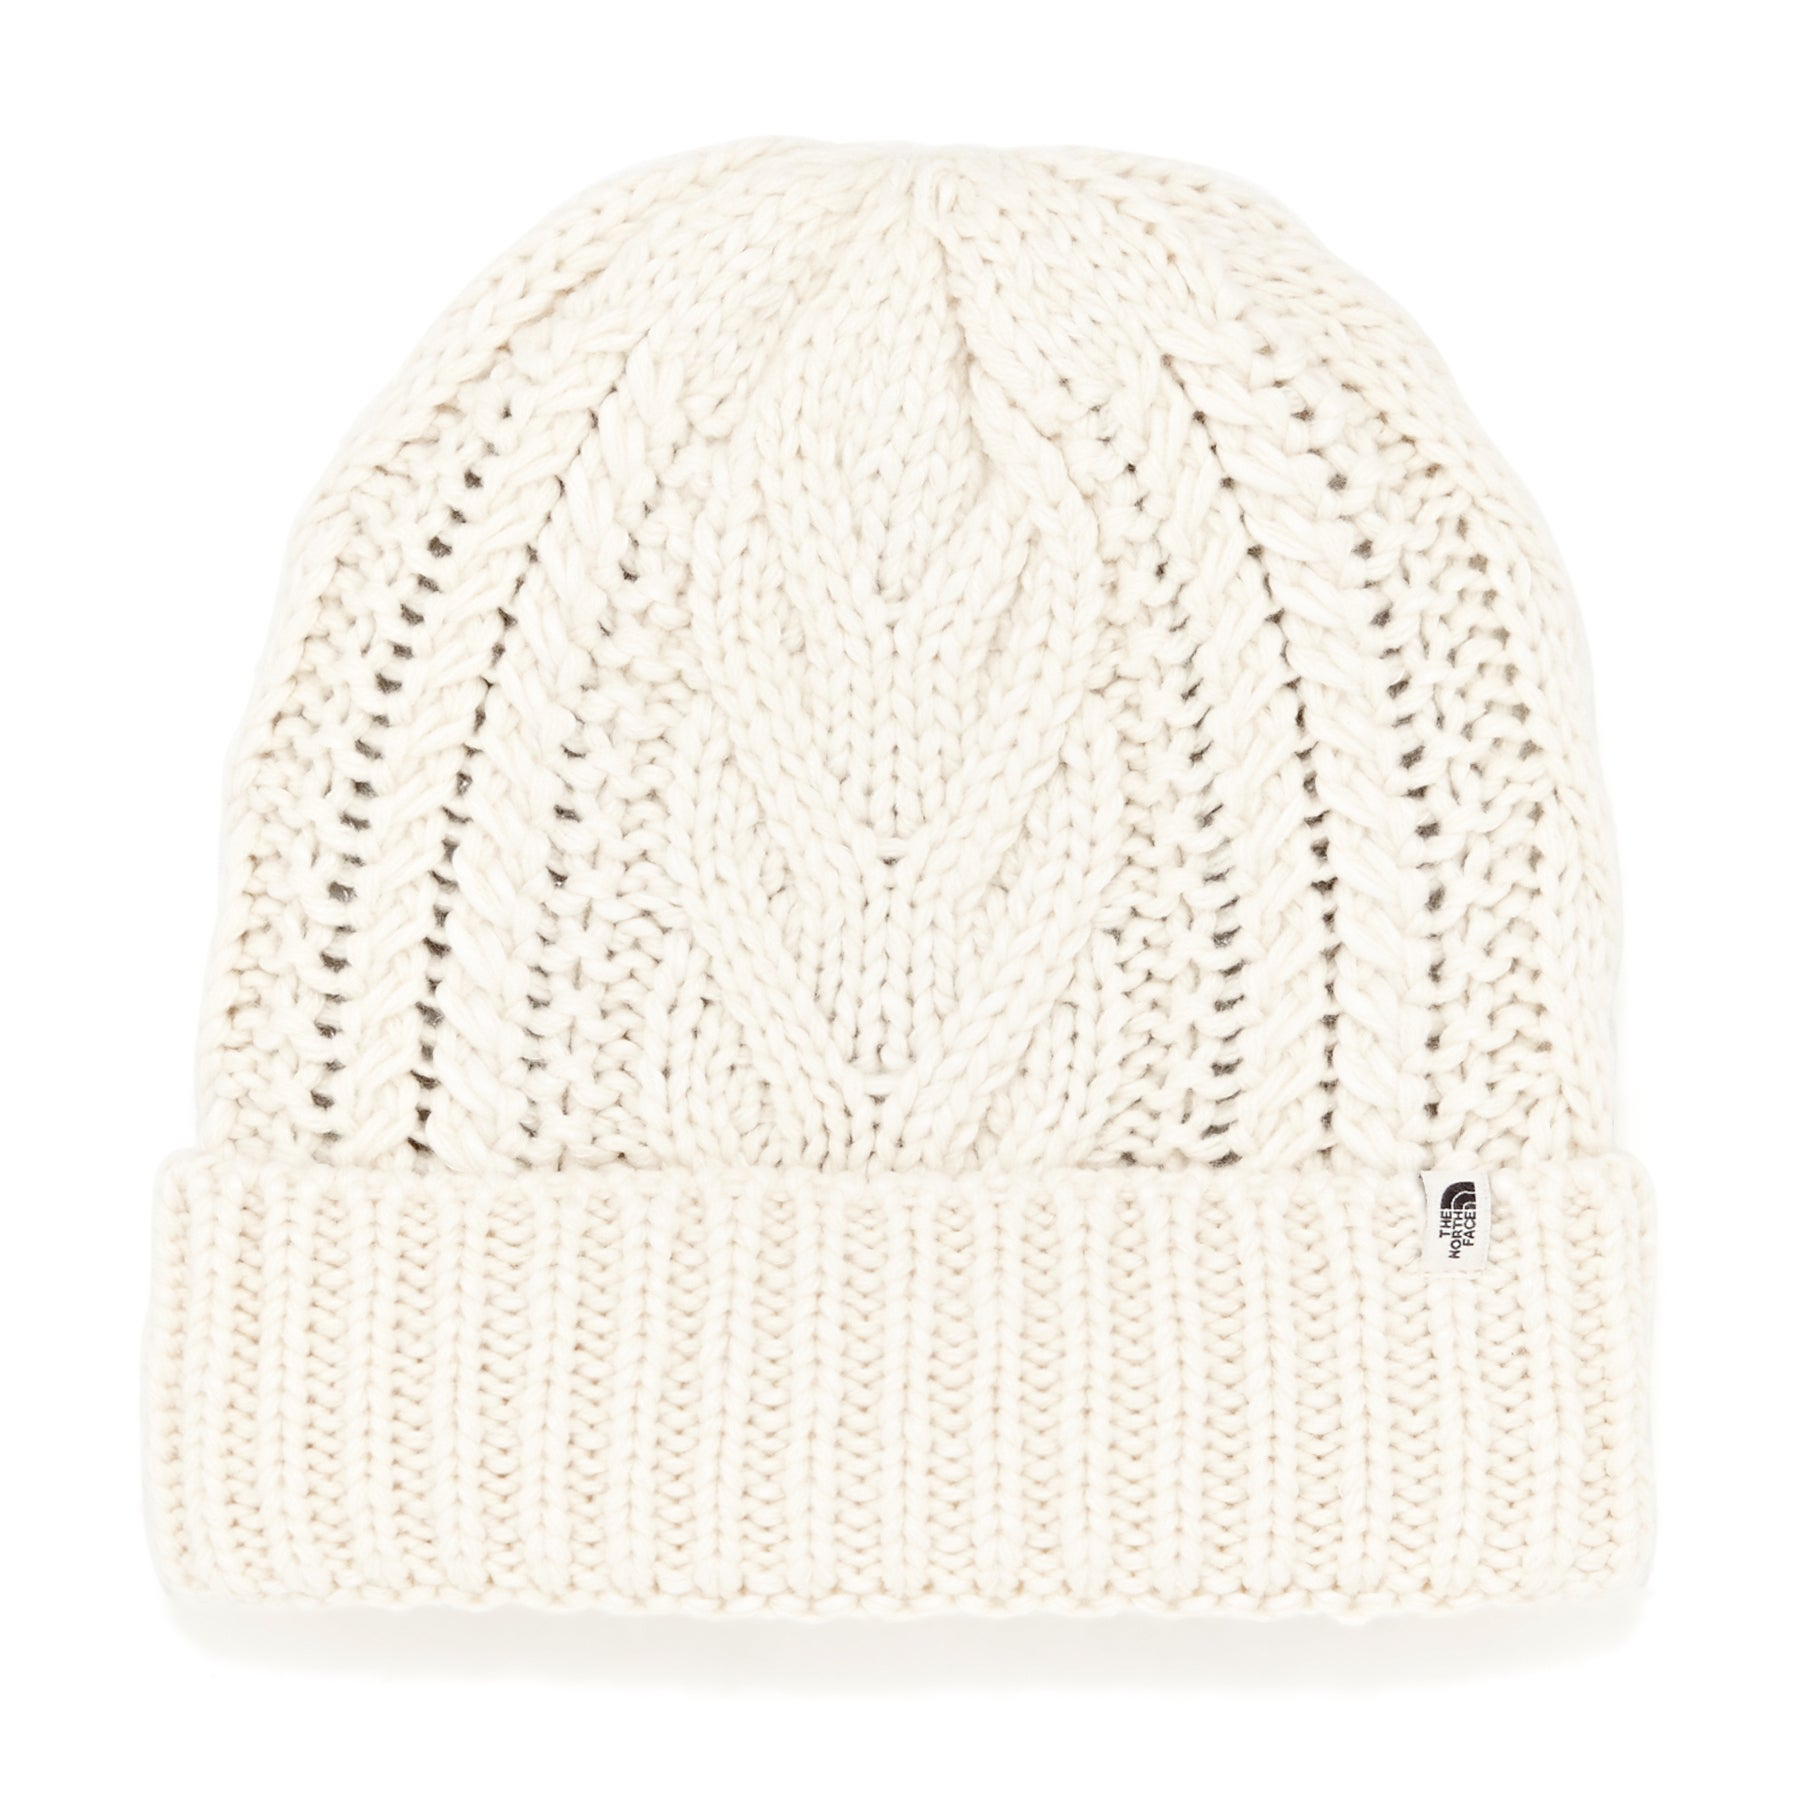 f2bc7d742 Details about The North Face Cable Minna Womens Headwear Beanie Hat -  Vintage White One Size